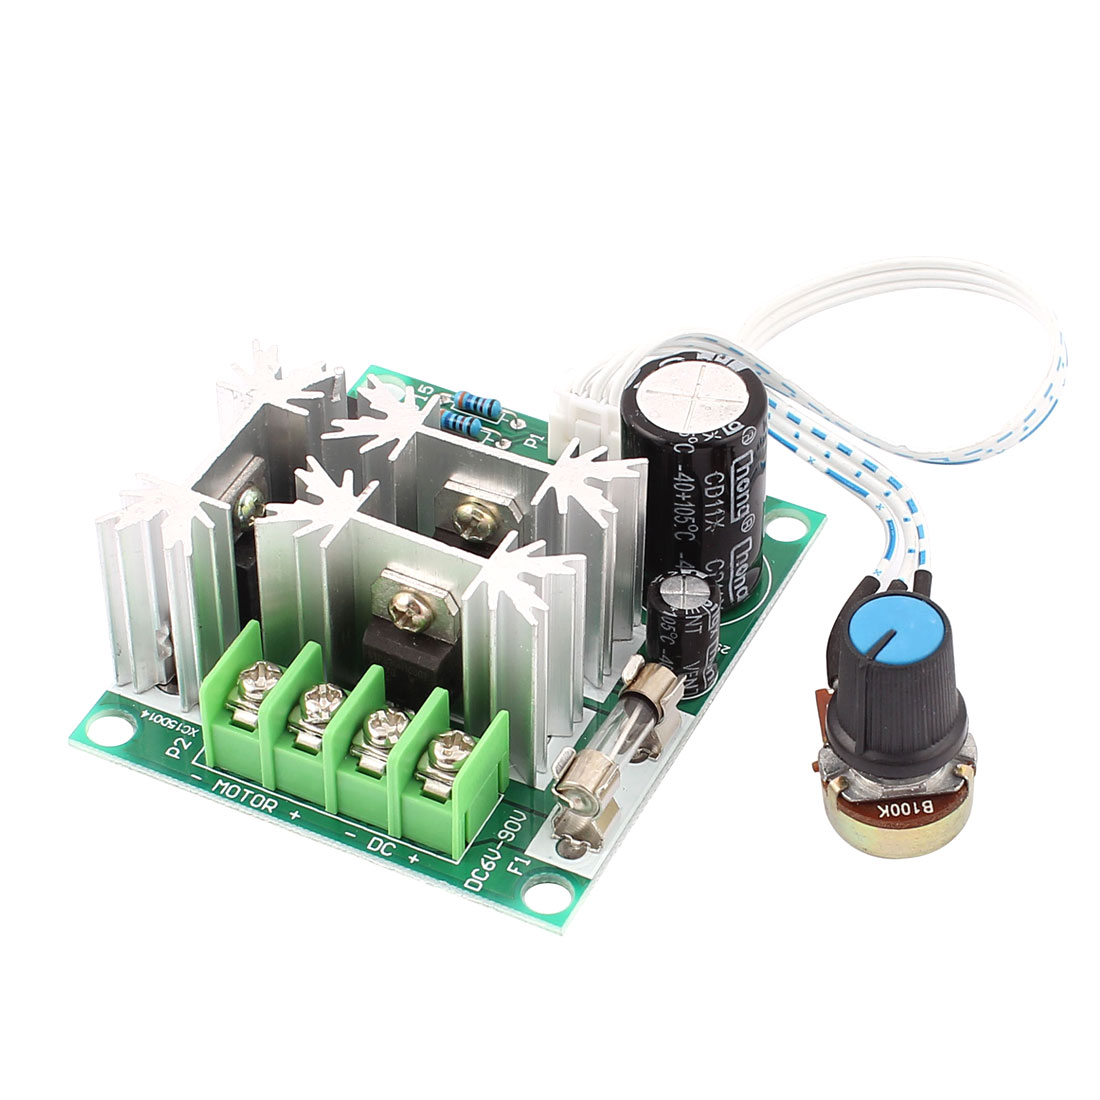 6V-90V 15A Pulse Width Modulator PWM DC Motor Speed Controller Control Switch